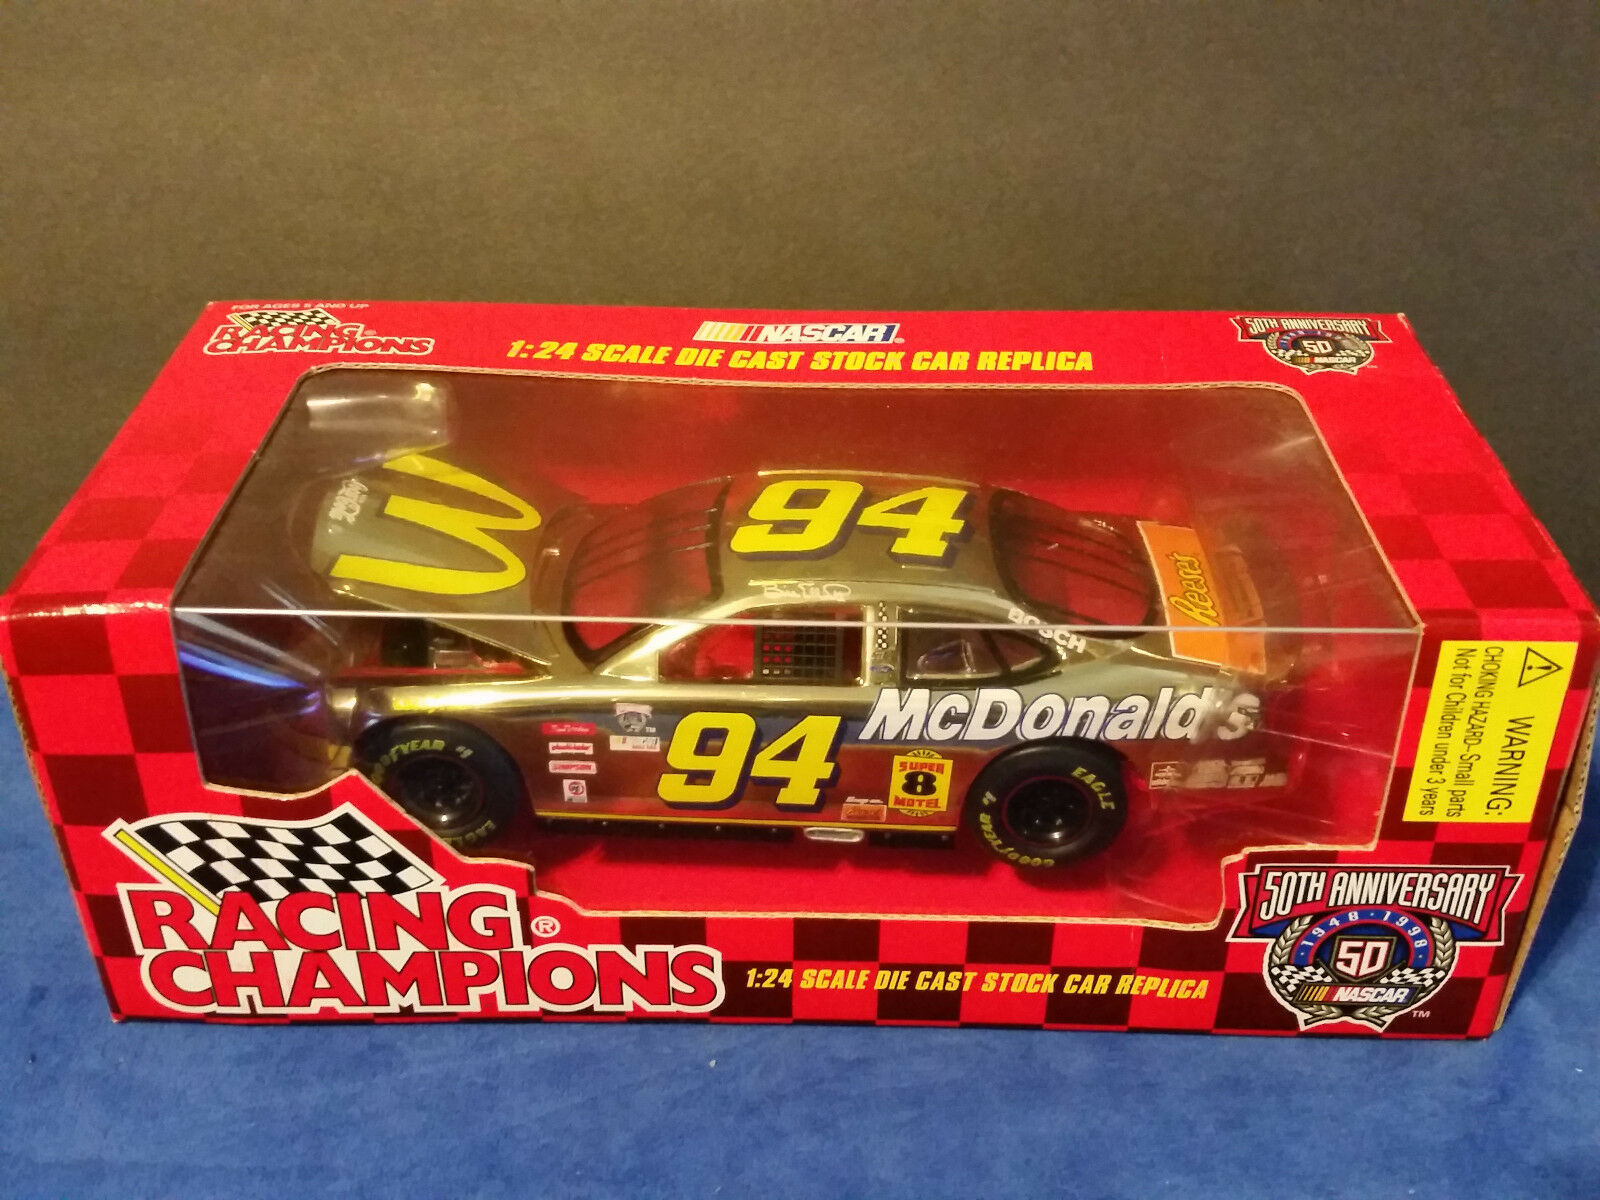 Nascar Bill Elliot Racing Champions 1 24 scale diecast 1998  gold